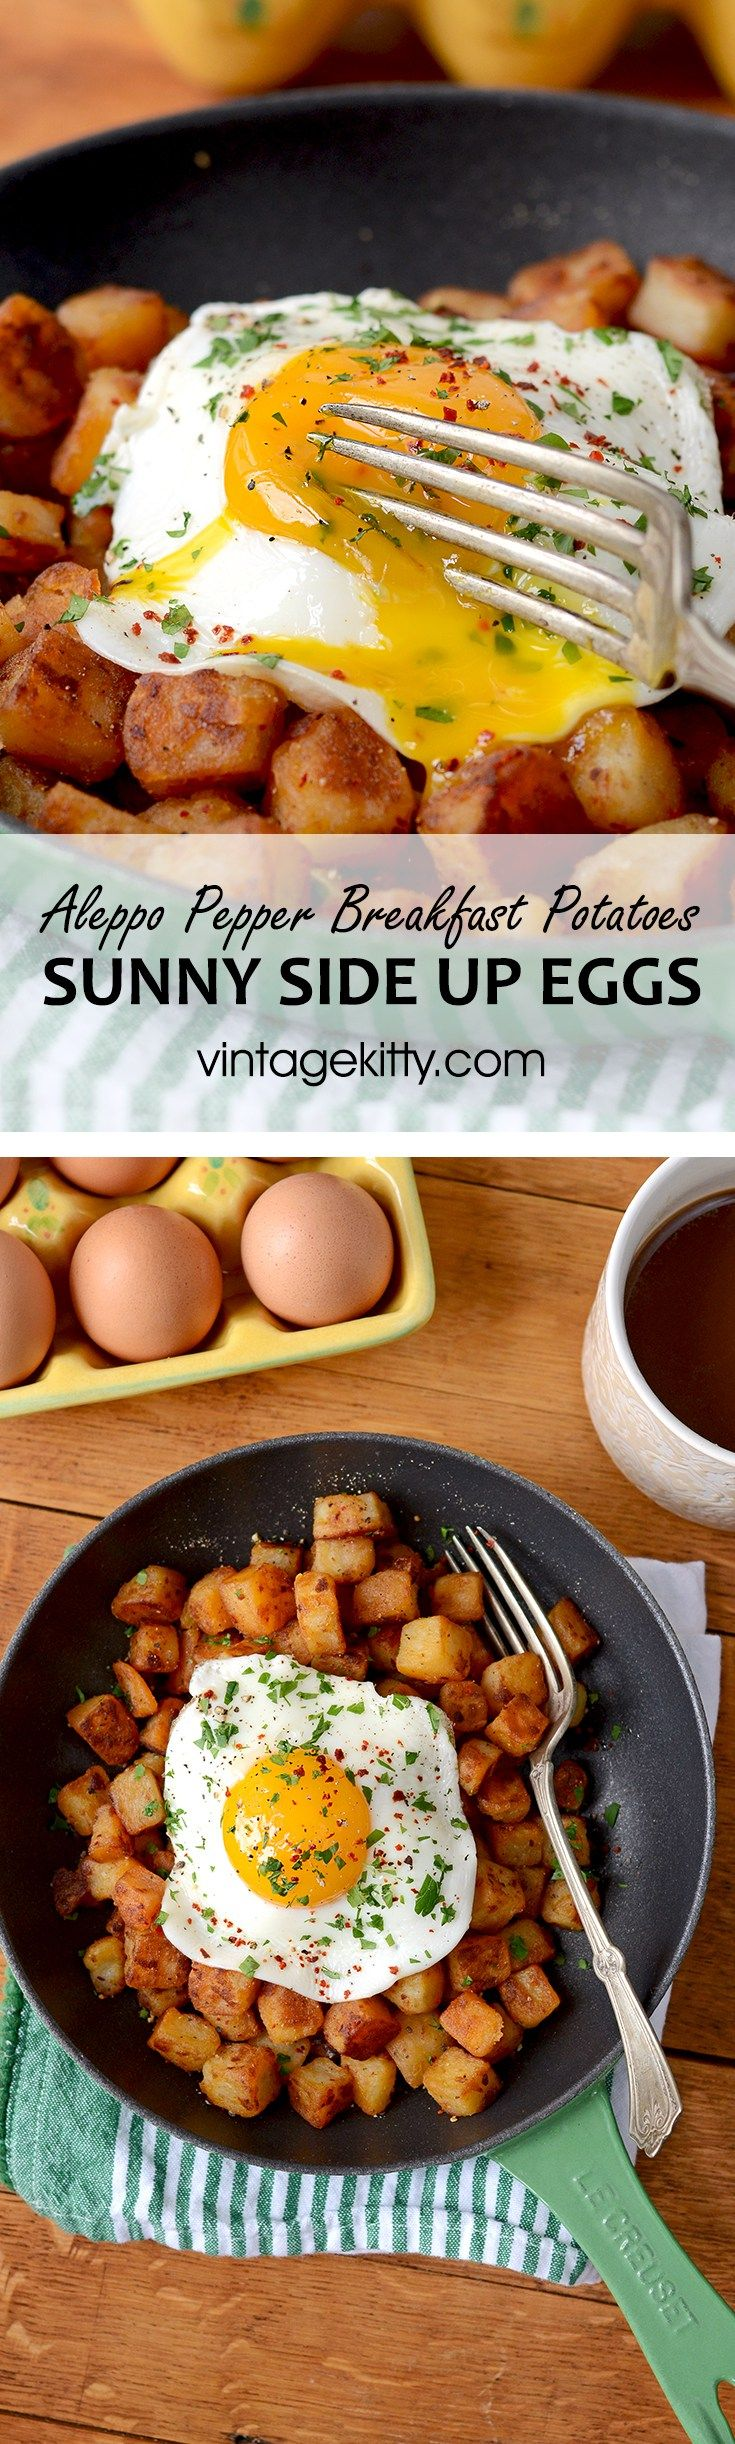 A healthy breakfast is the recipe for a good start to your day! Get our tips on how to make perfectly crispy breakfast potatoes and runny sunny side up eggs